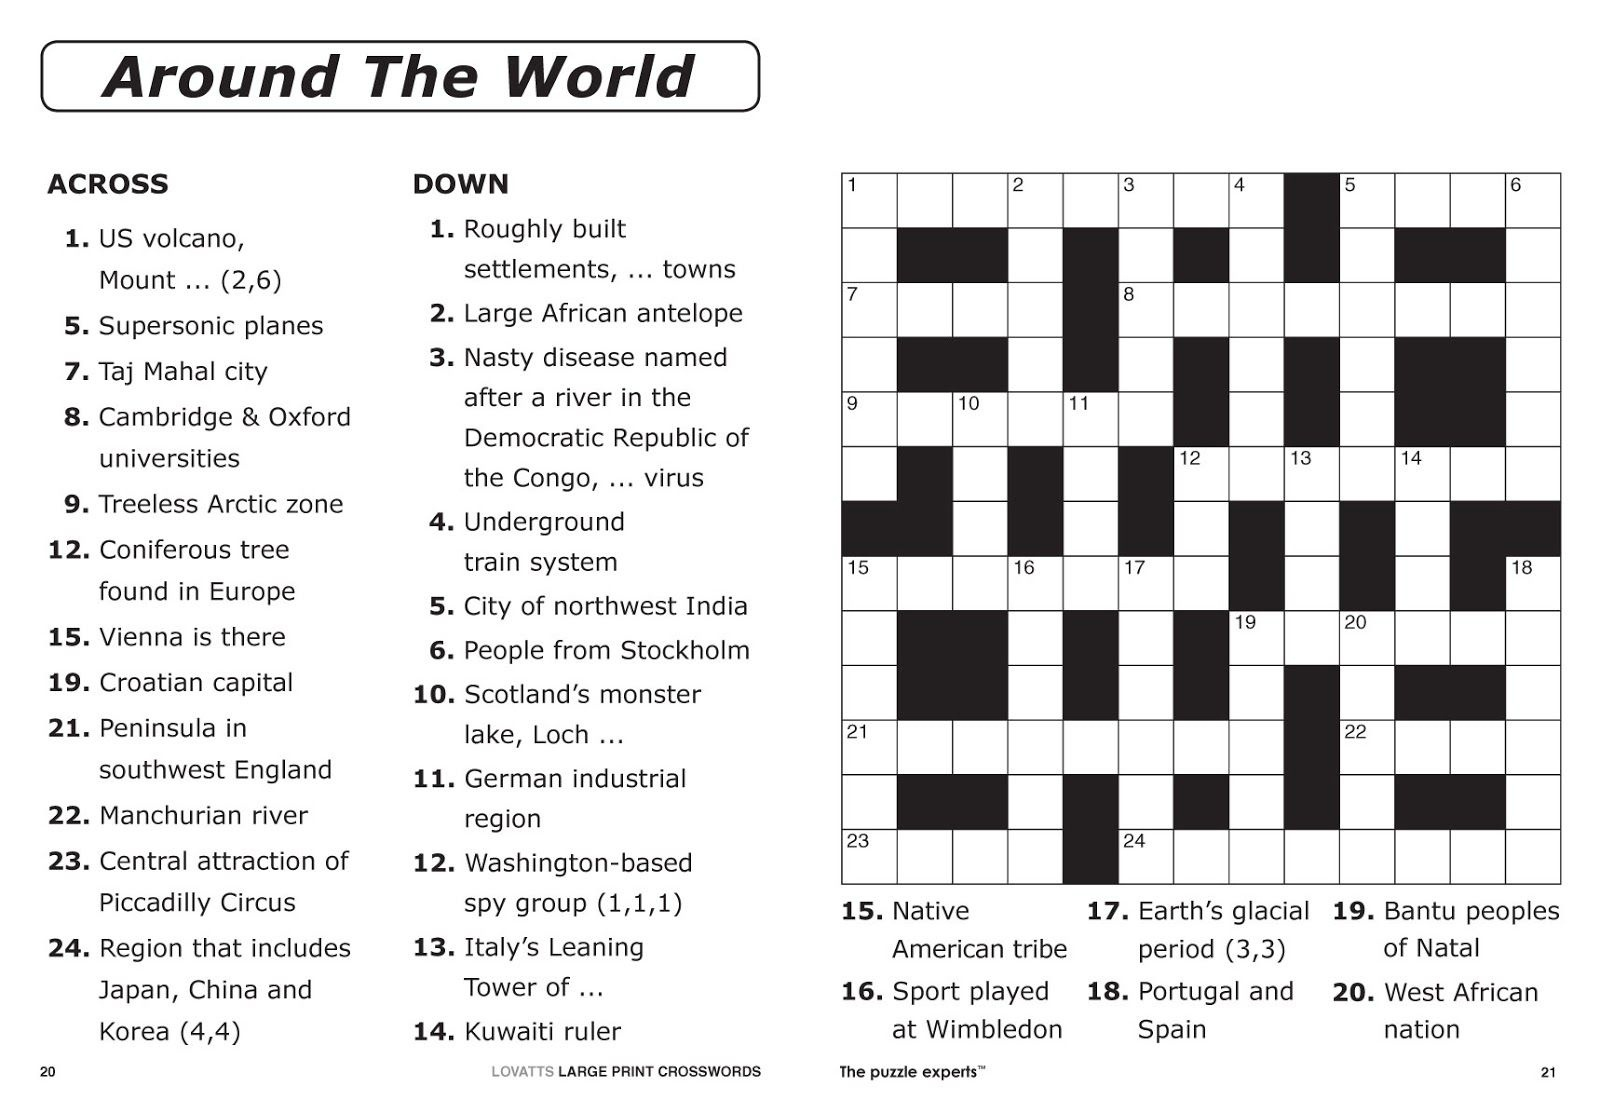 Free Printable Large Print Crossword Puzzles | M3U8 - Free Printable Large Print Crossword Puzzles